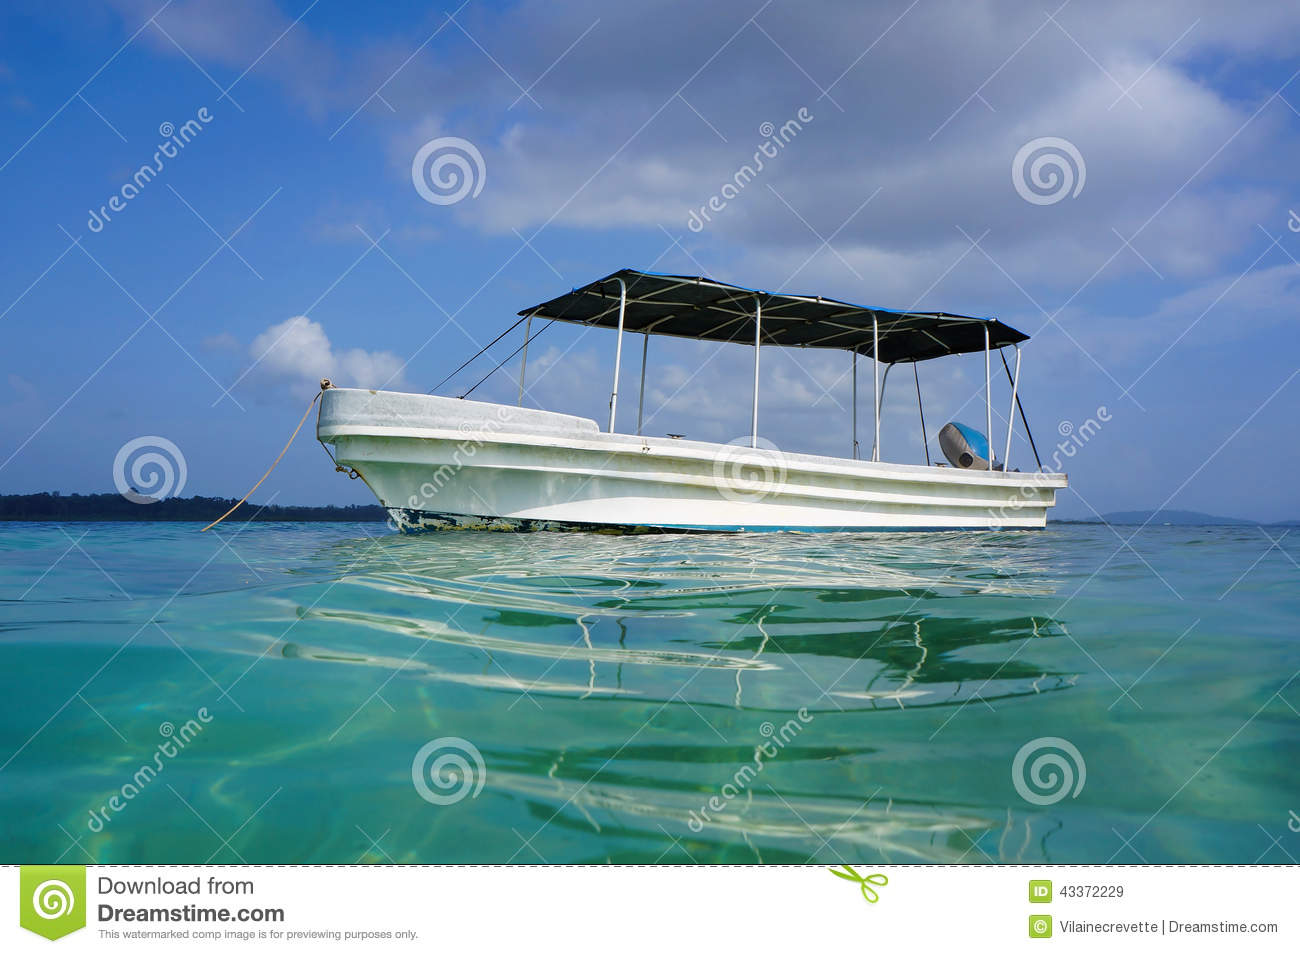 Boat Viewed From Water Surface In Caribbean Sea Stock Photo - Image: 43372229